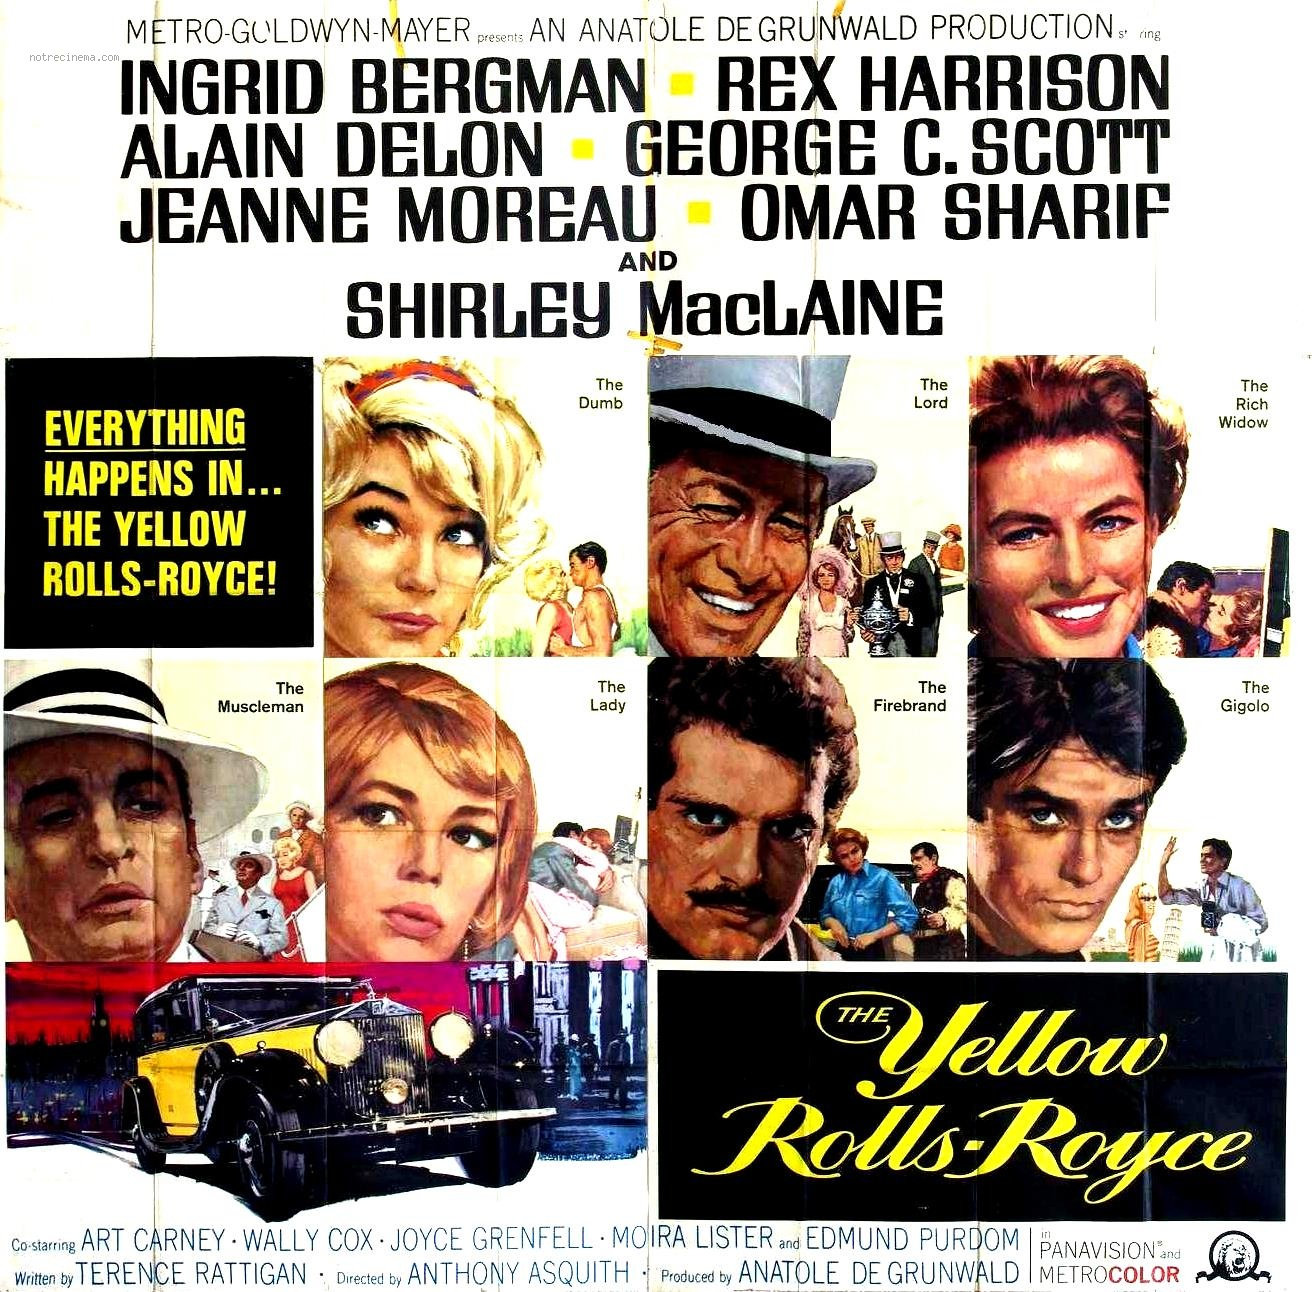 The Yellow Rolls-Royce (1964) | The Hollywood Revue